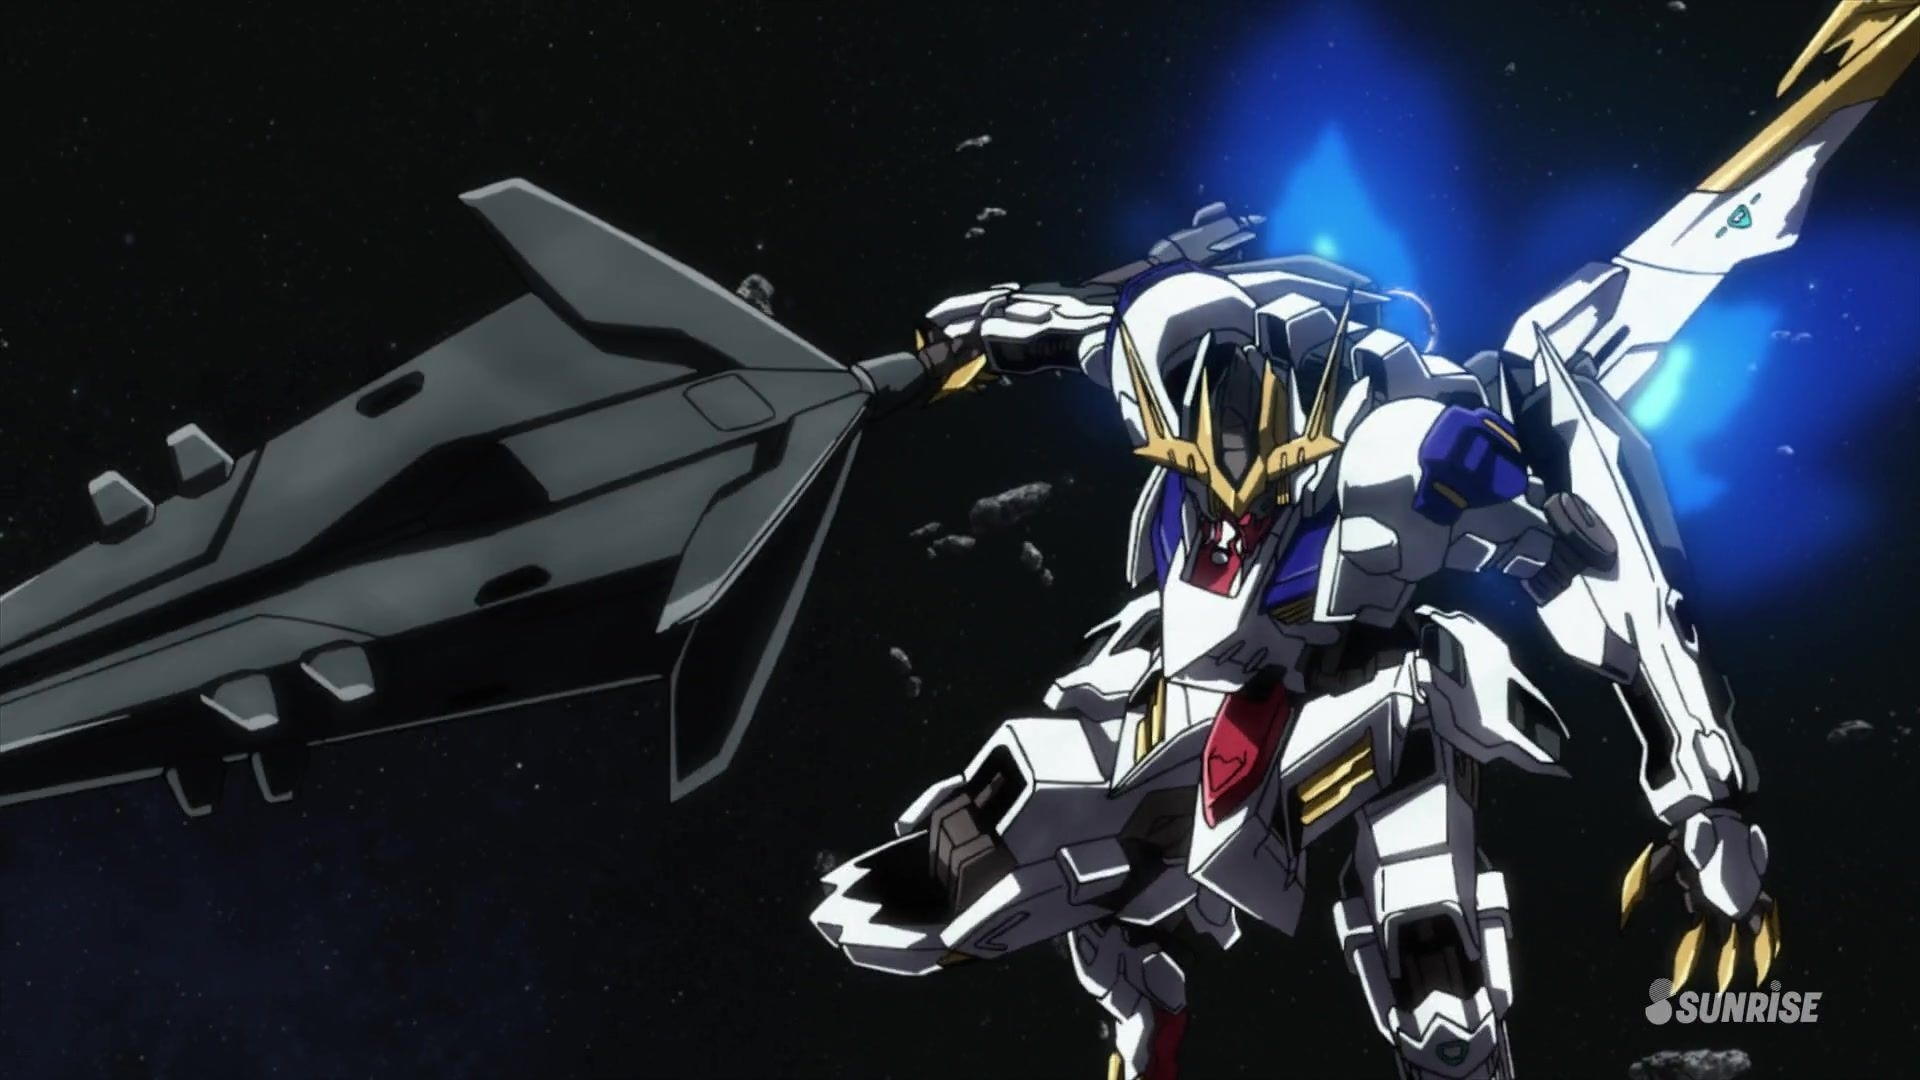 gundam barbatos lupus rex wallpaper | anime wallpaper | dibujo